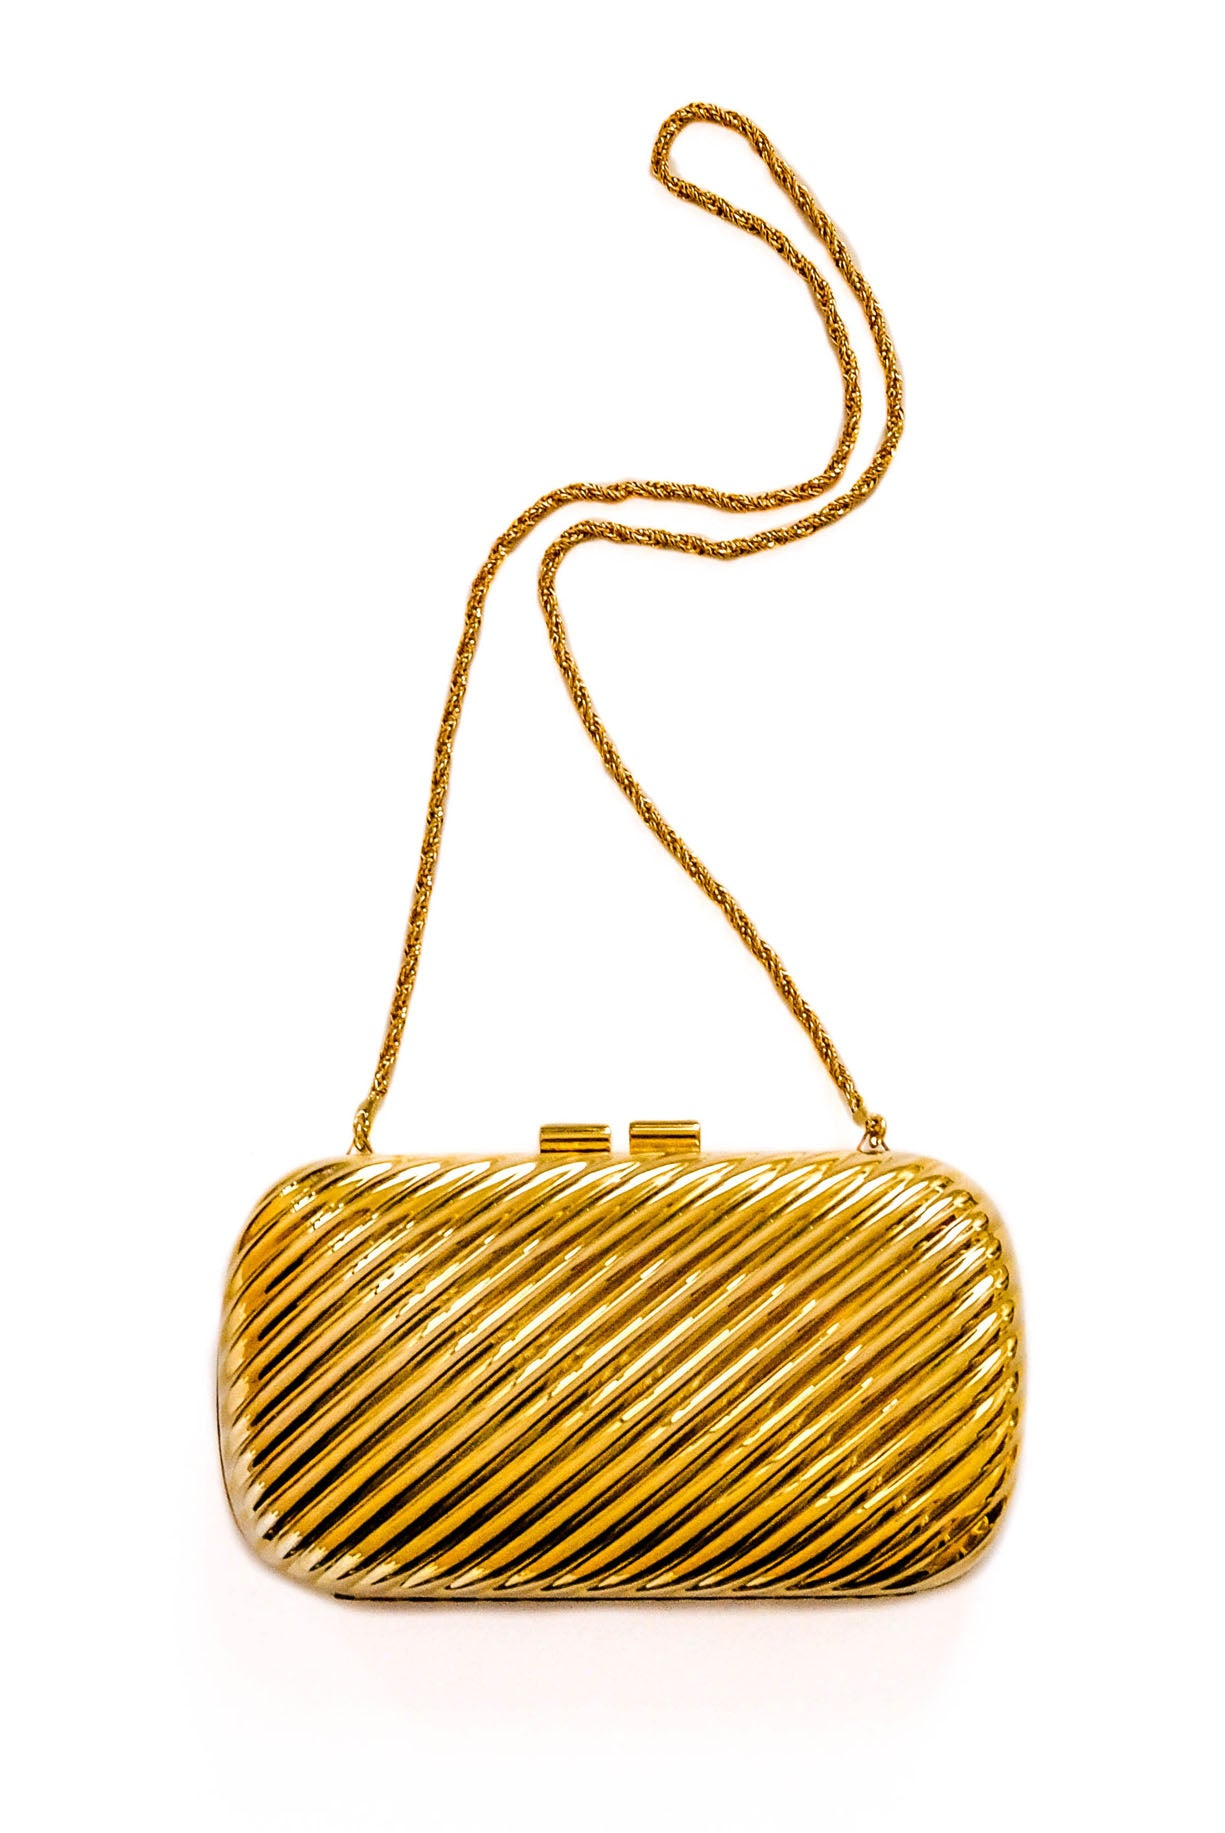 Vintage brass clamshell bag from Sweet & Spark.